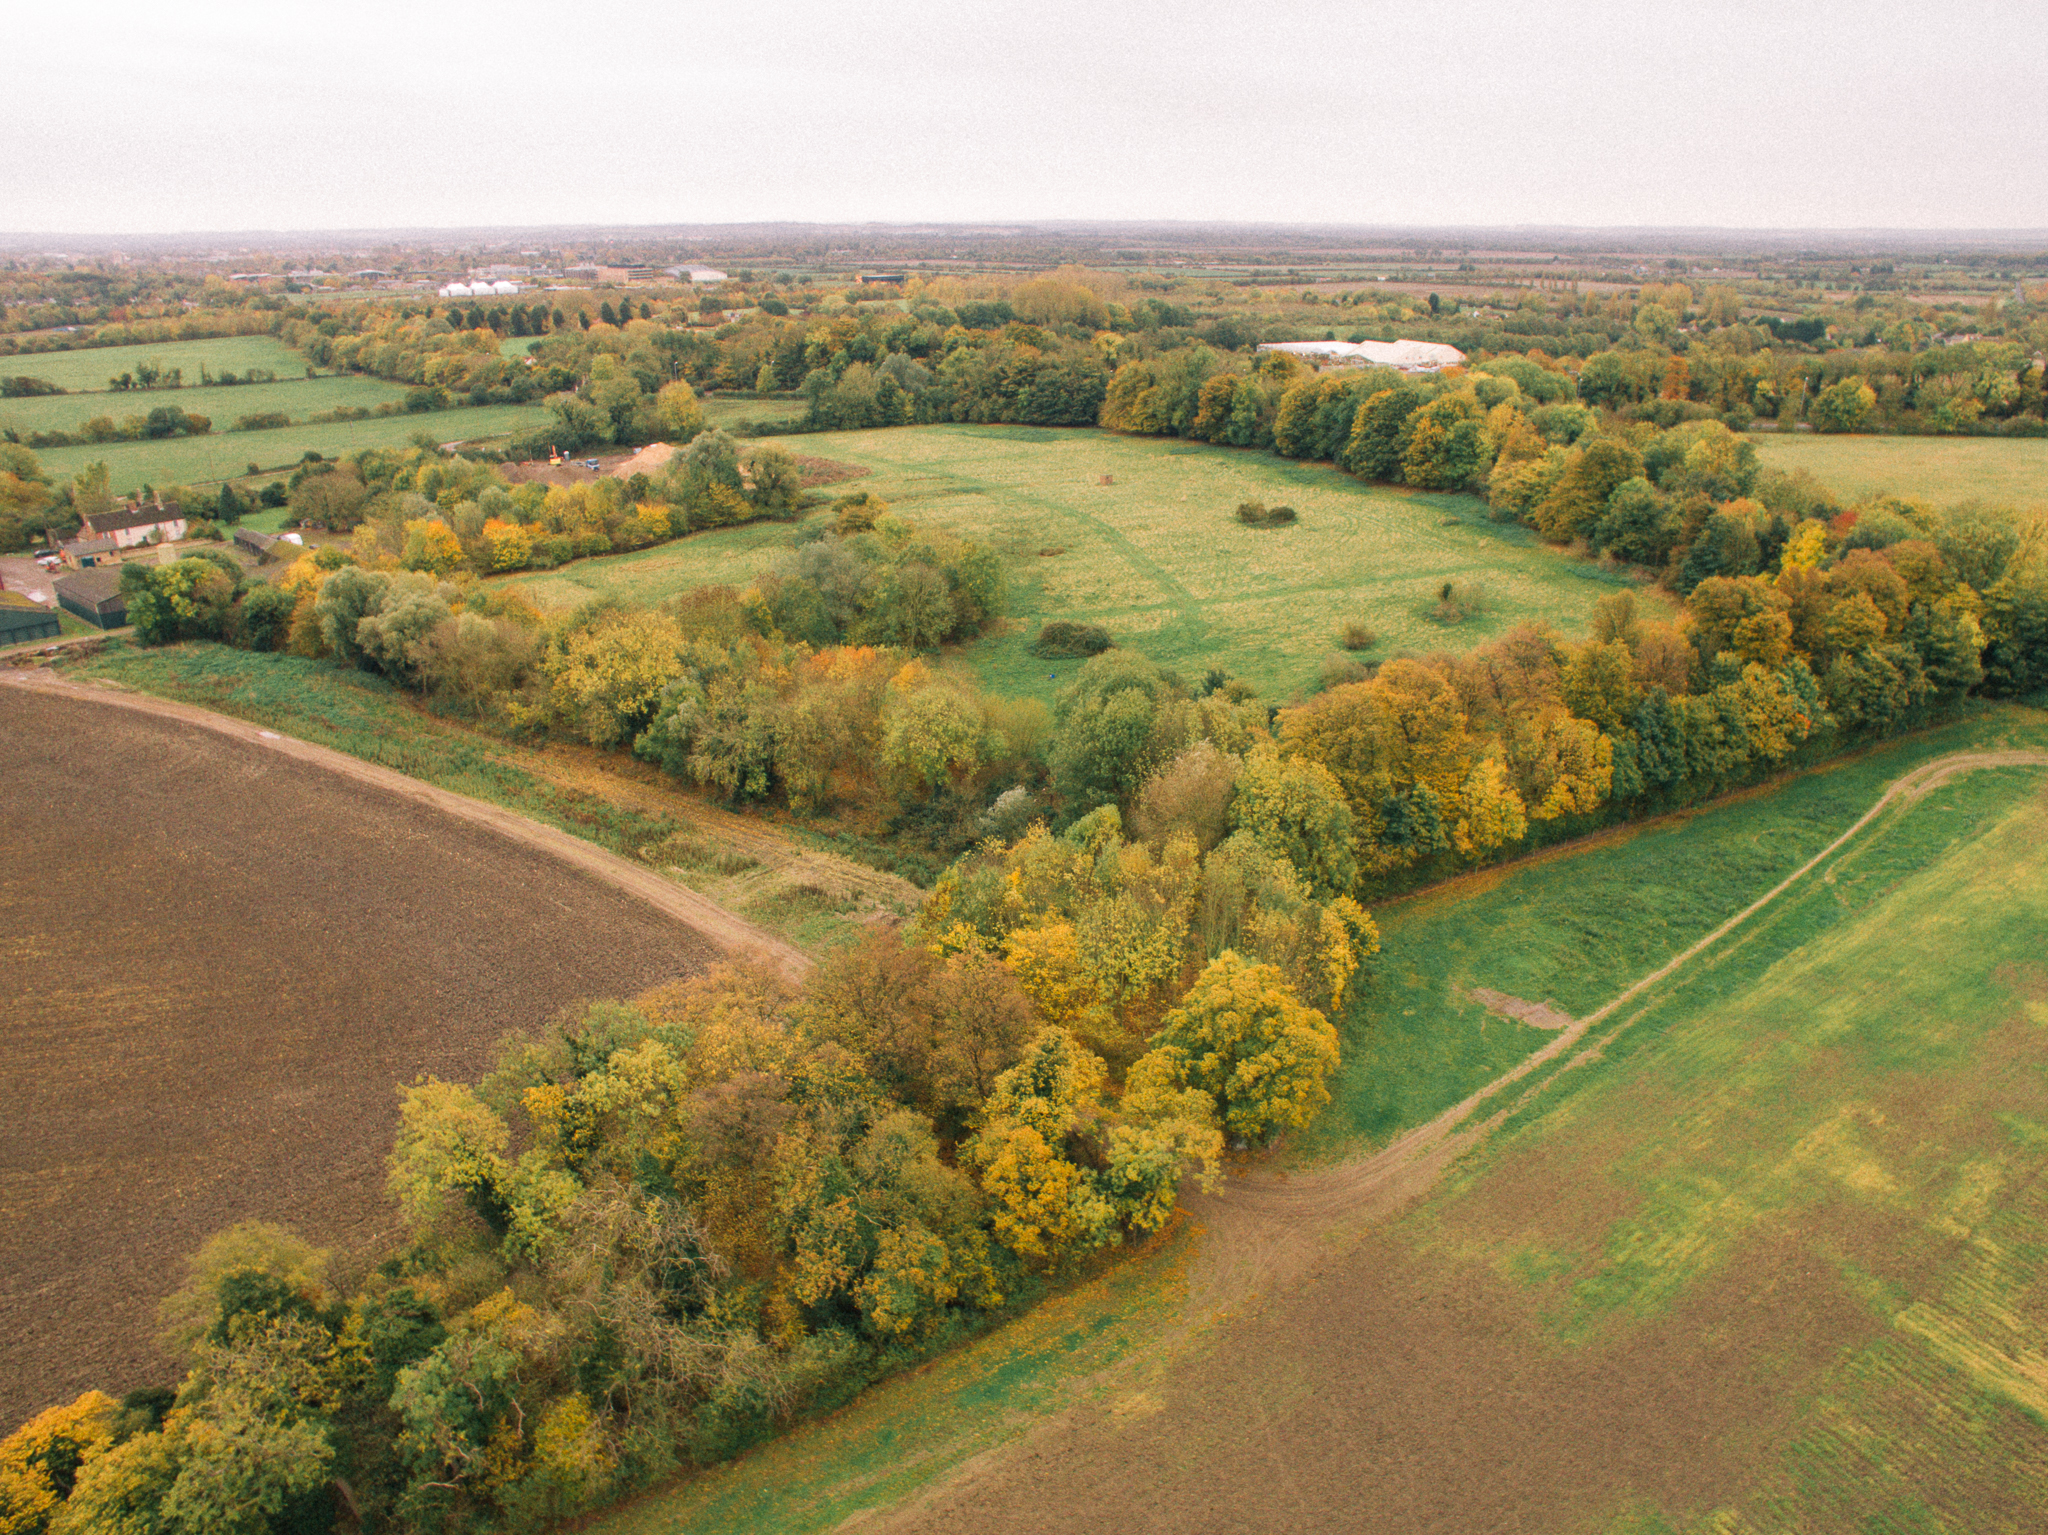 A pic from the first flight test with my drone